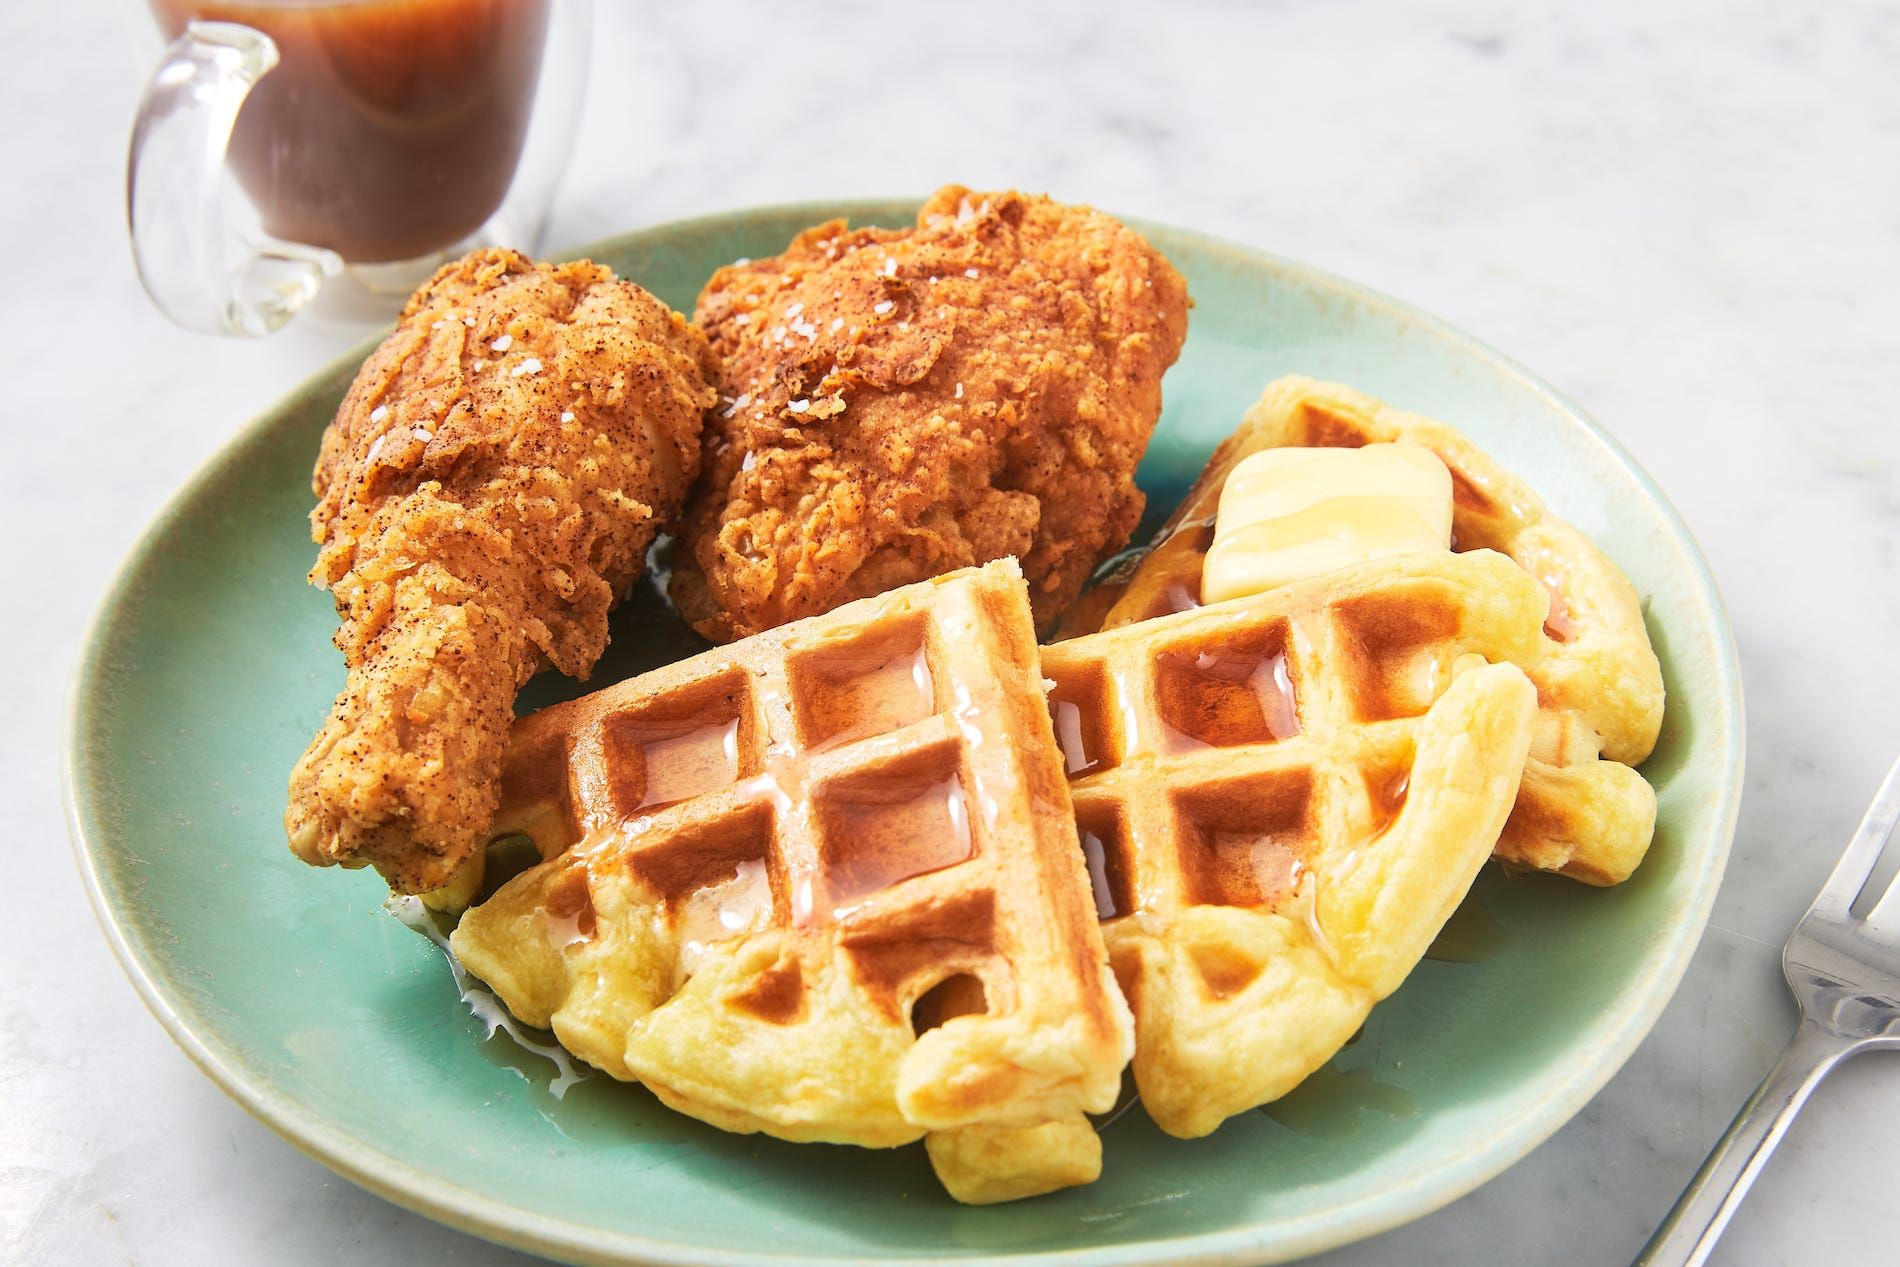 https://hips.hearstapps.com/hmg-prod.s3.amazonaws.com/images/190307-chicken-and-waffles-508-1553552447.jpg